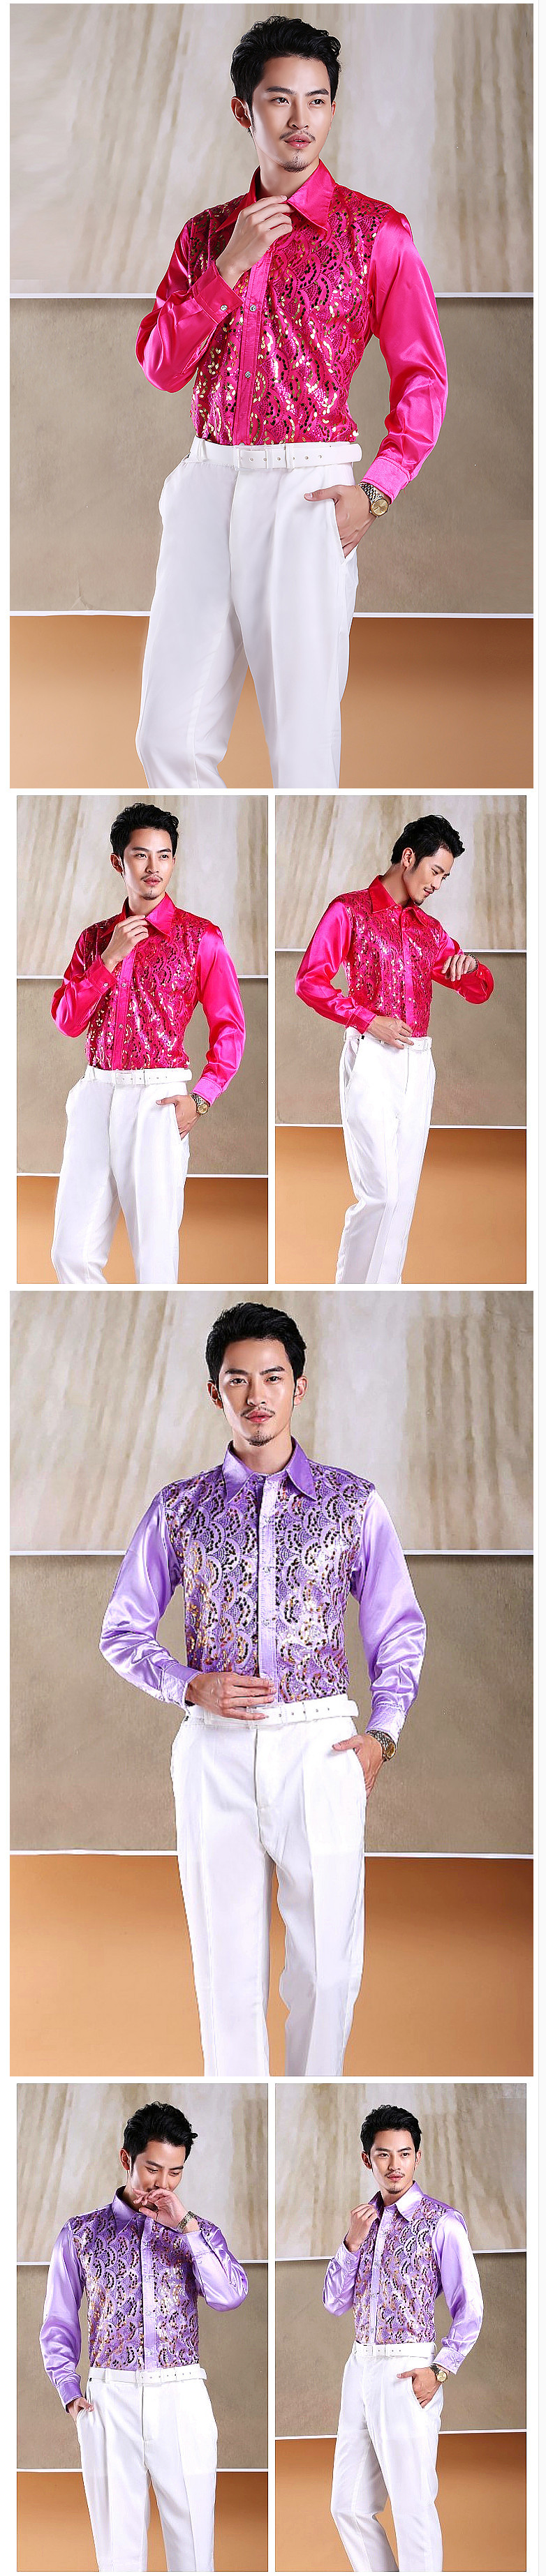 2016 new Men s glittering sequined shirt shirt stage performance ... fc9bf2a98a75